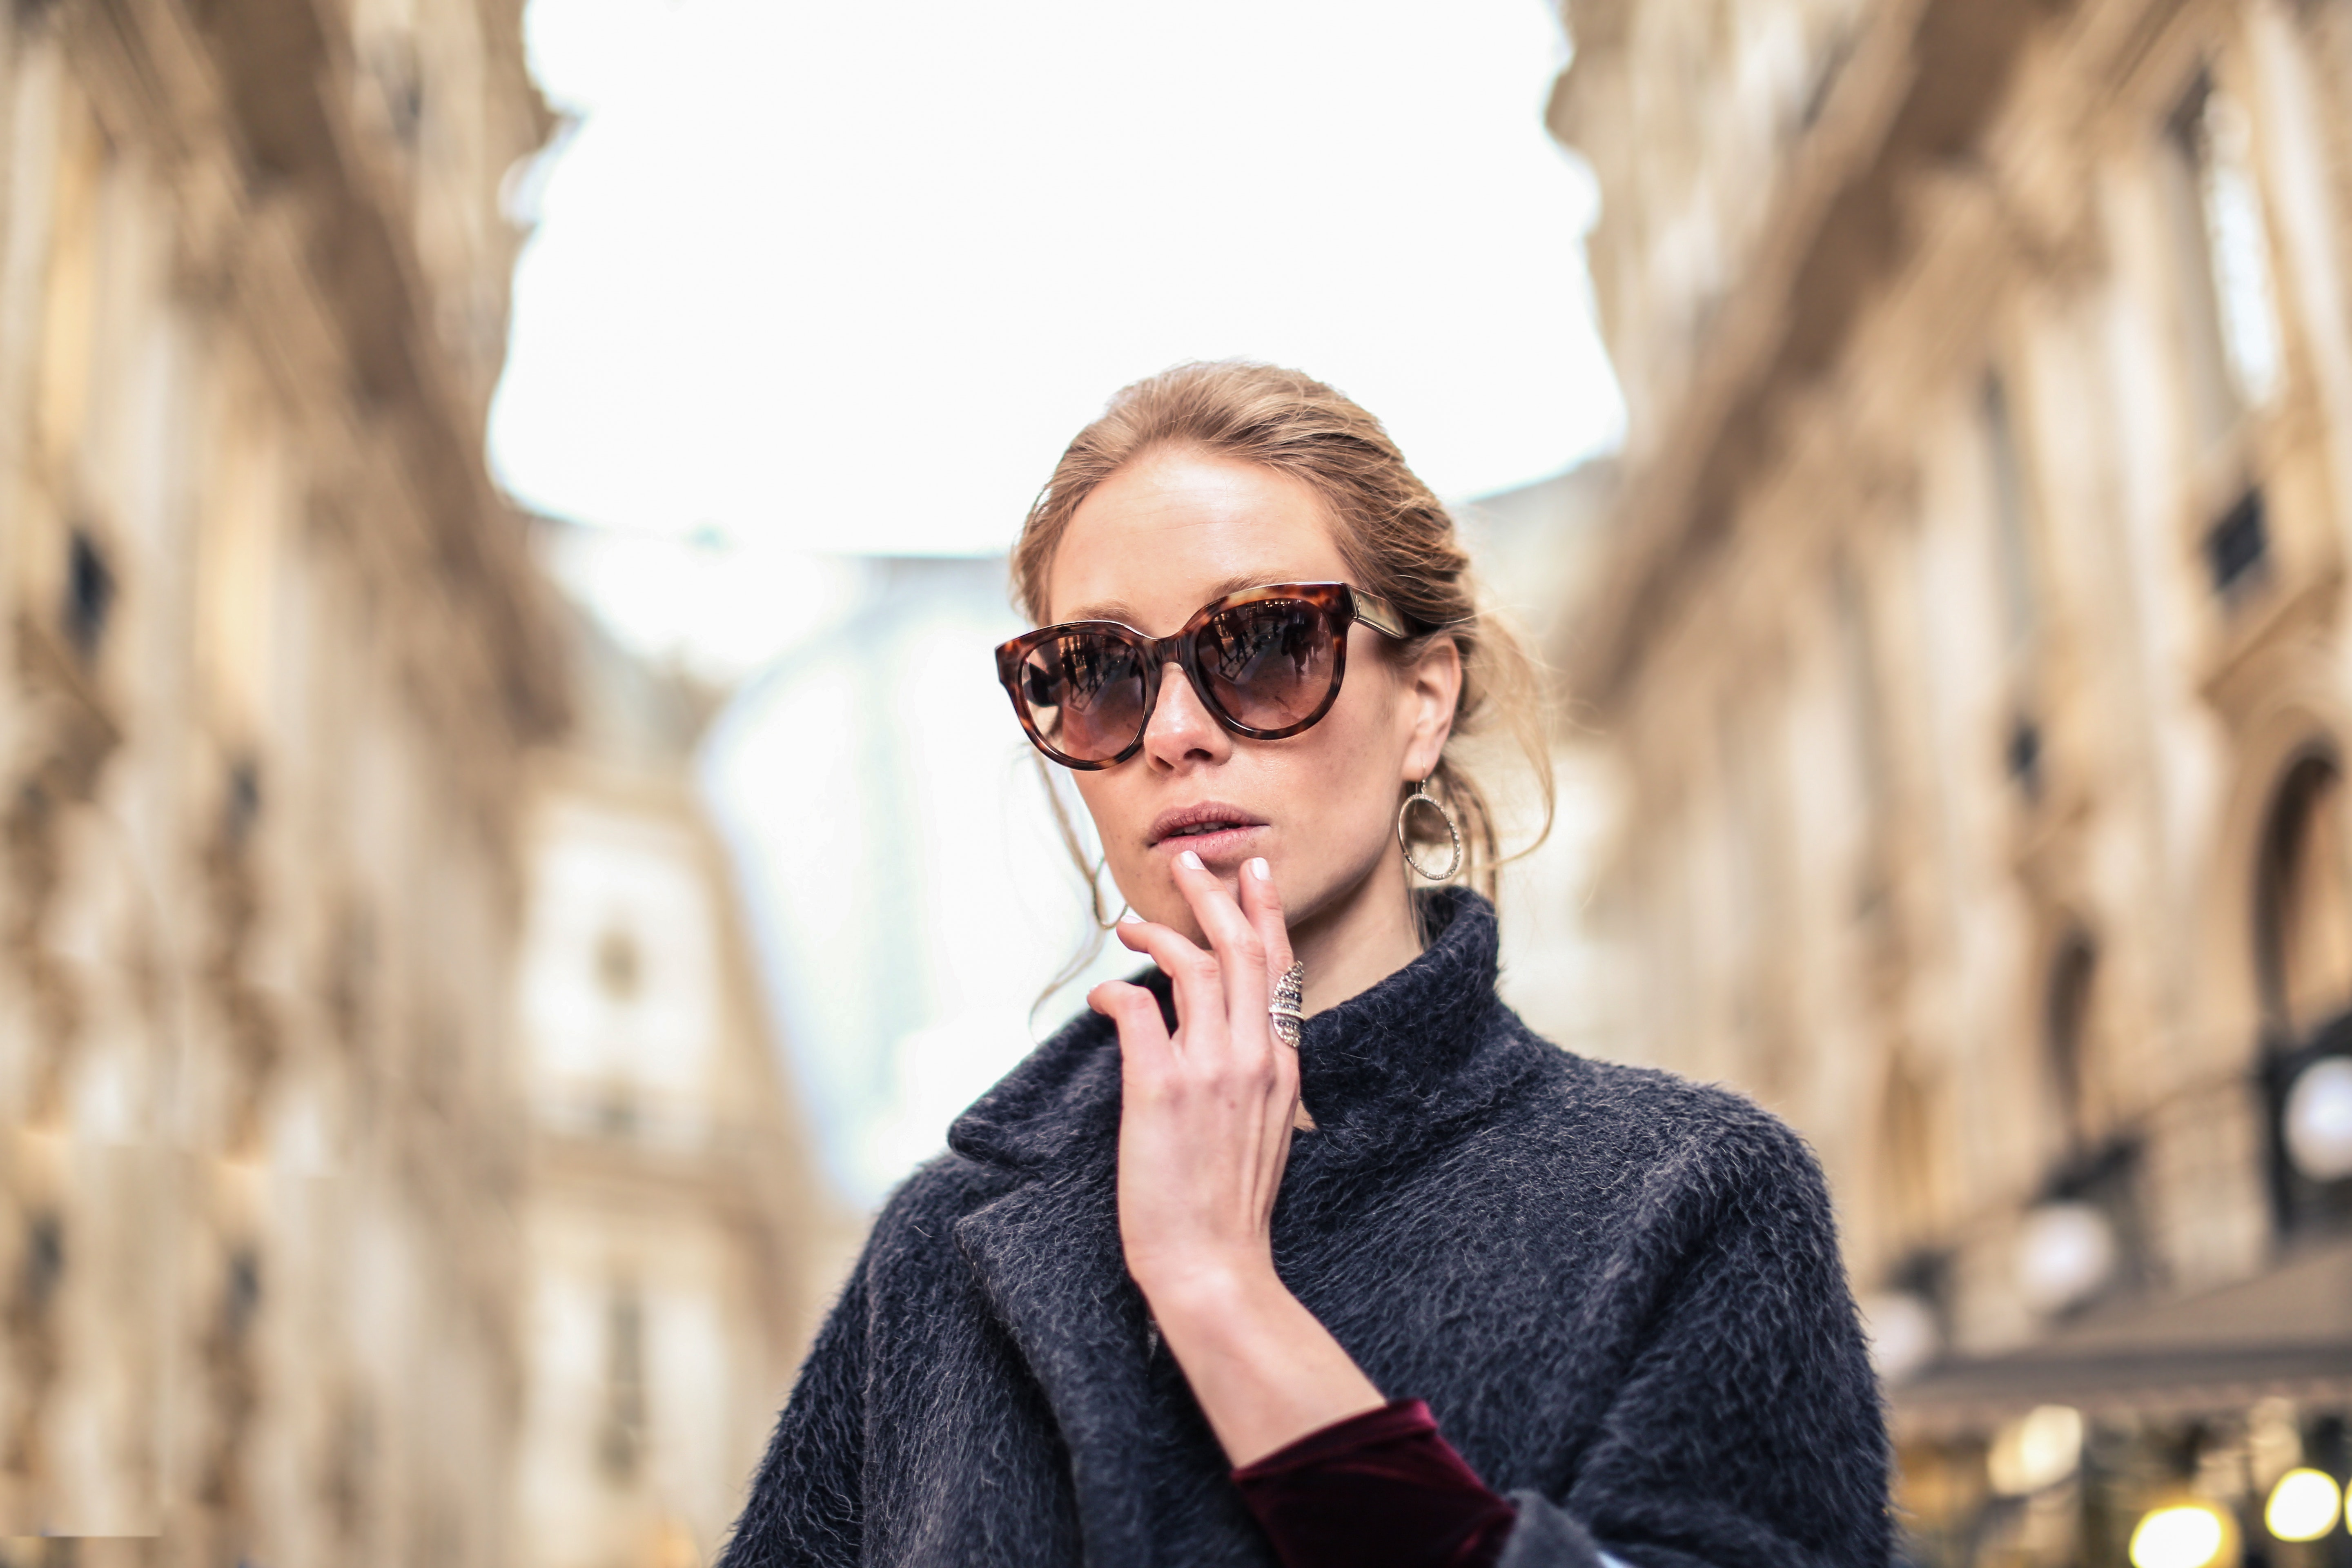 Woman Wearing Black Coat and Brown Framed Sunglasses, Pretty, Photoshoot, Person, Outdoors, HQ Photo